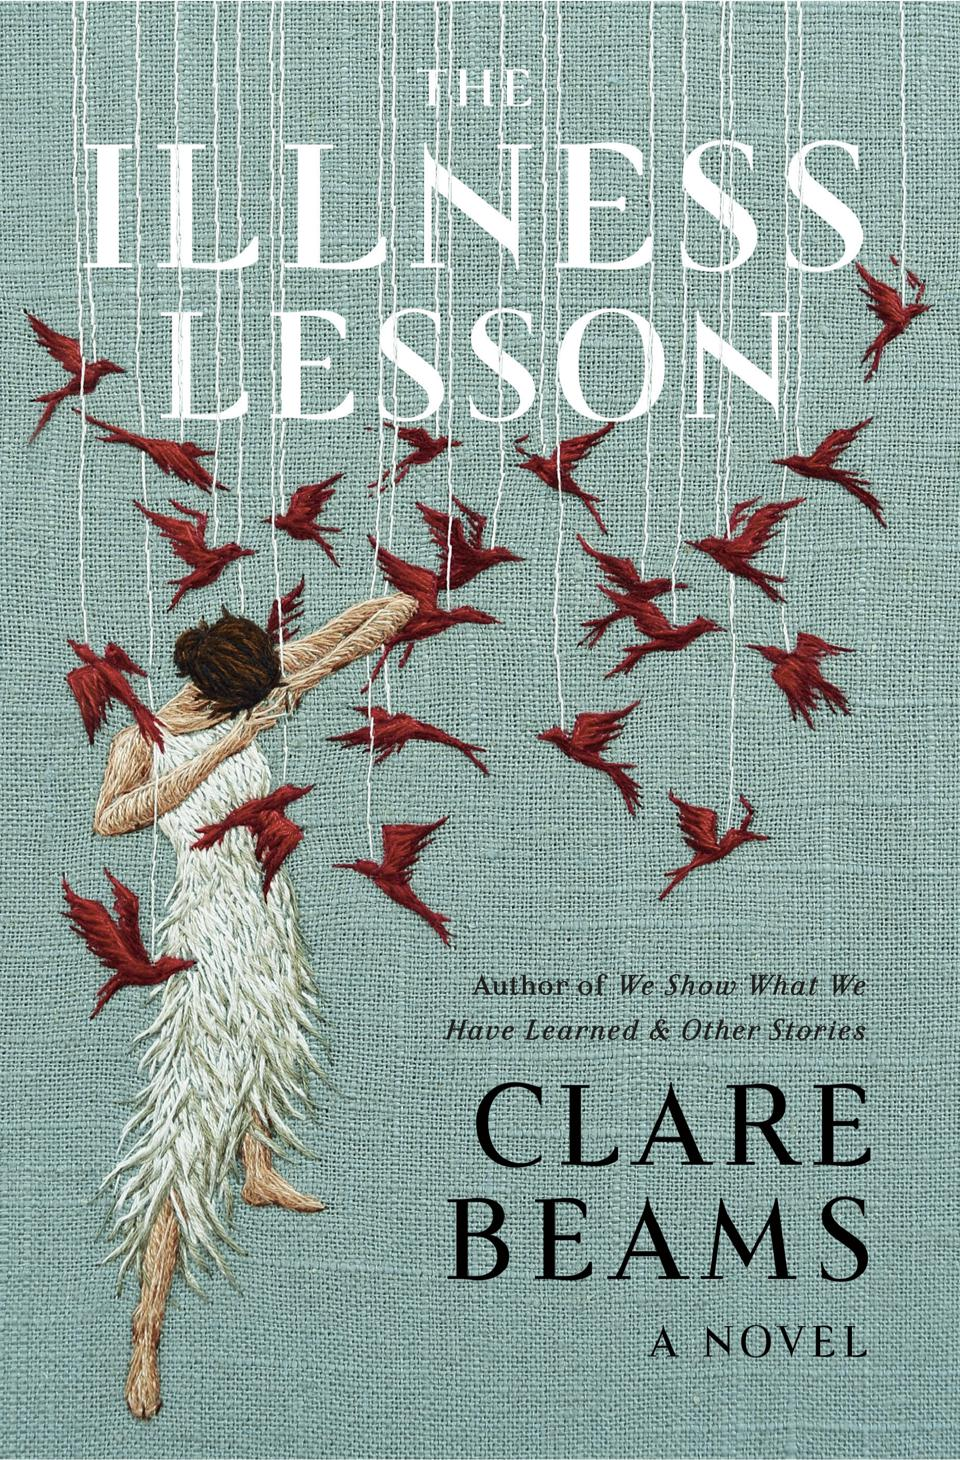 illness lesson clare beams book cover novel fiction doubleday books emily mahon